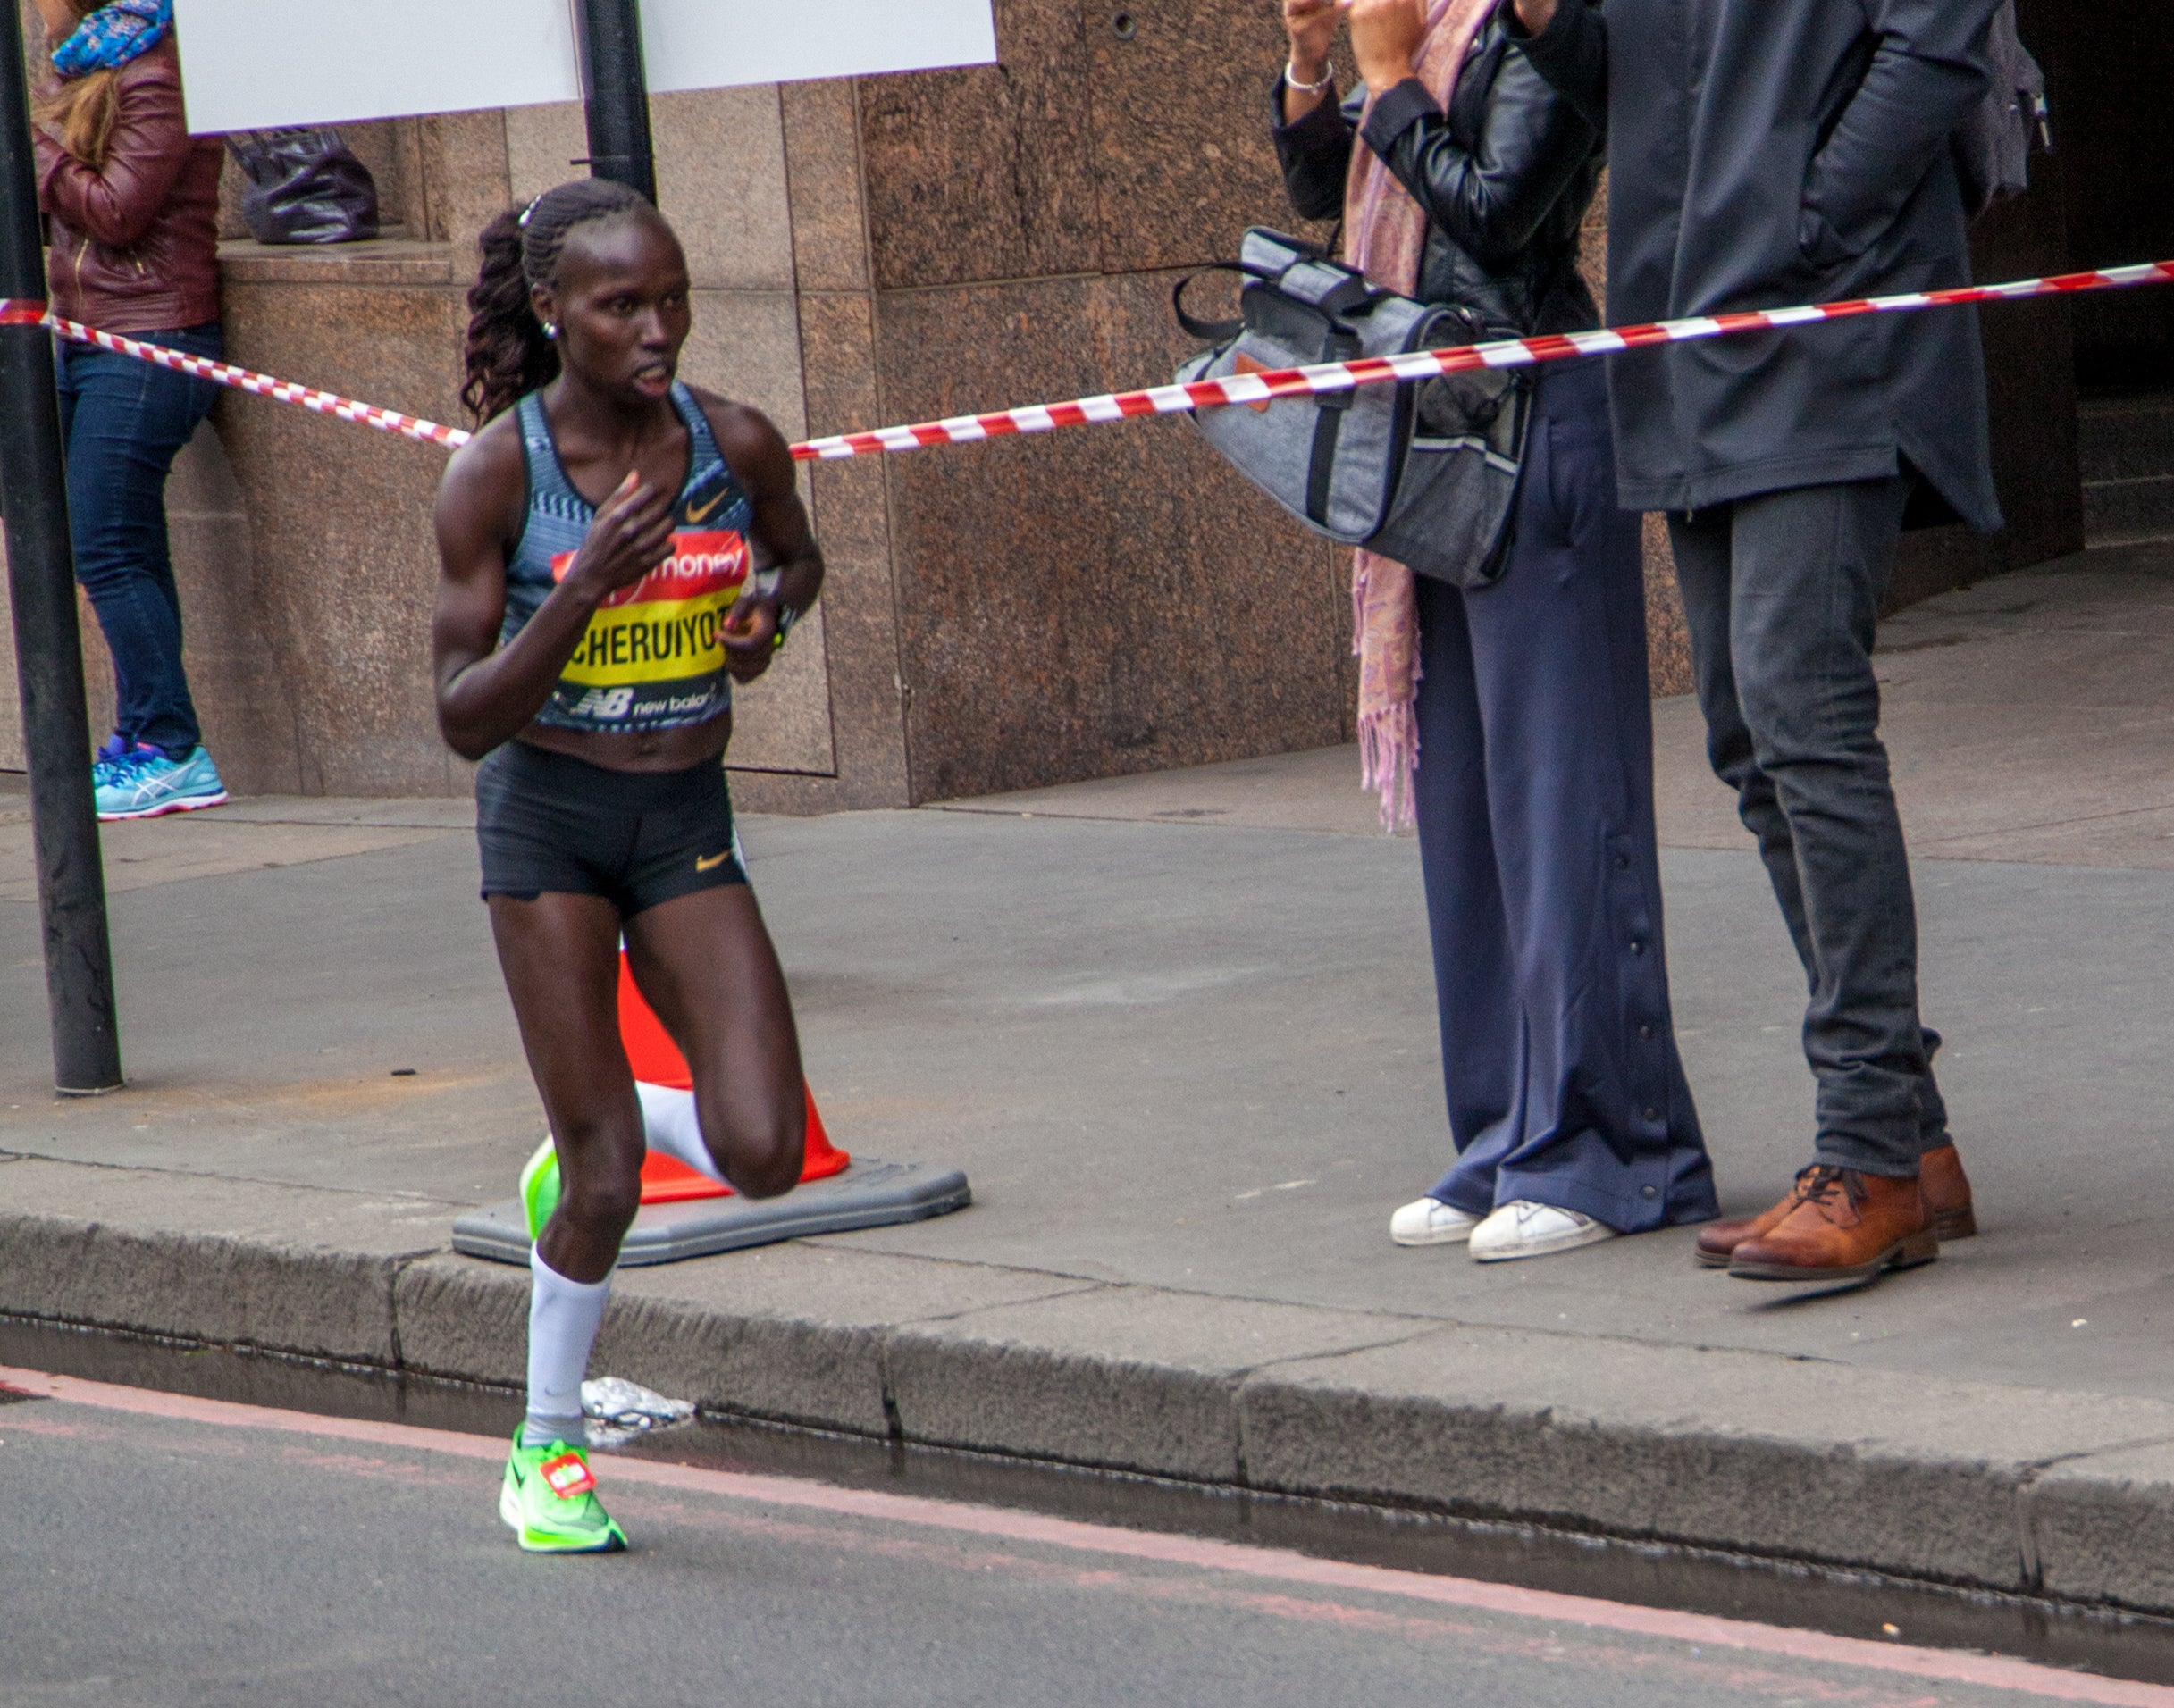 Vivian Cheriyot at the 2019 London Marathon